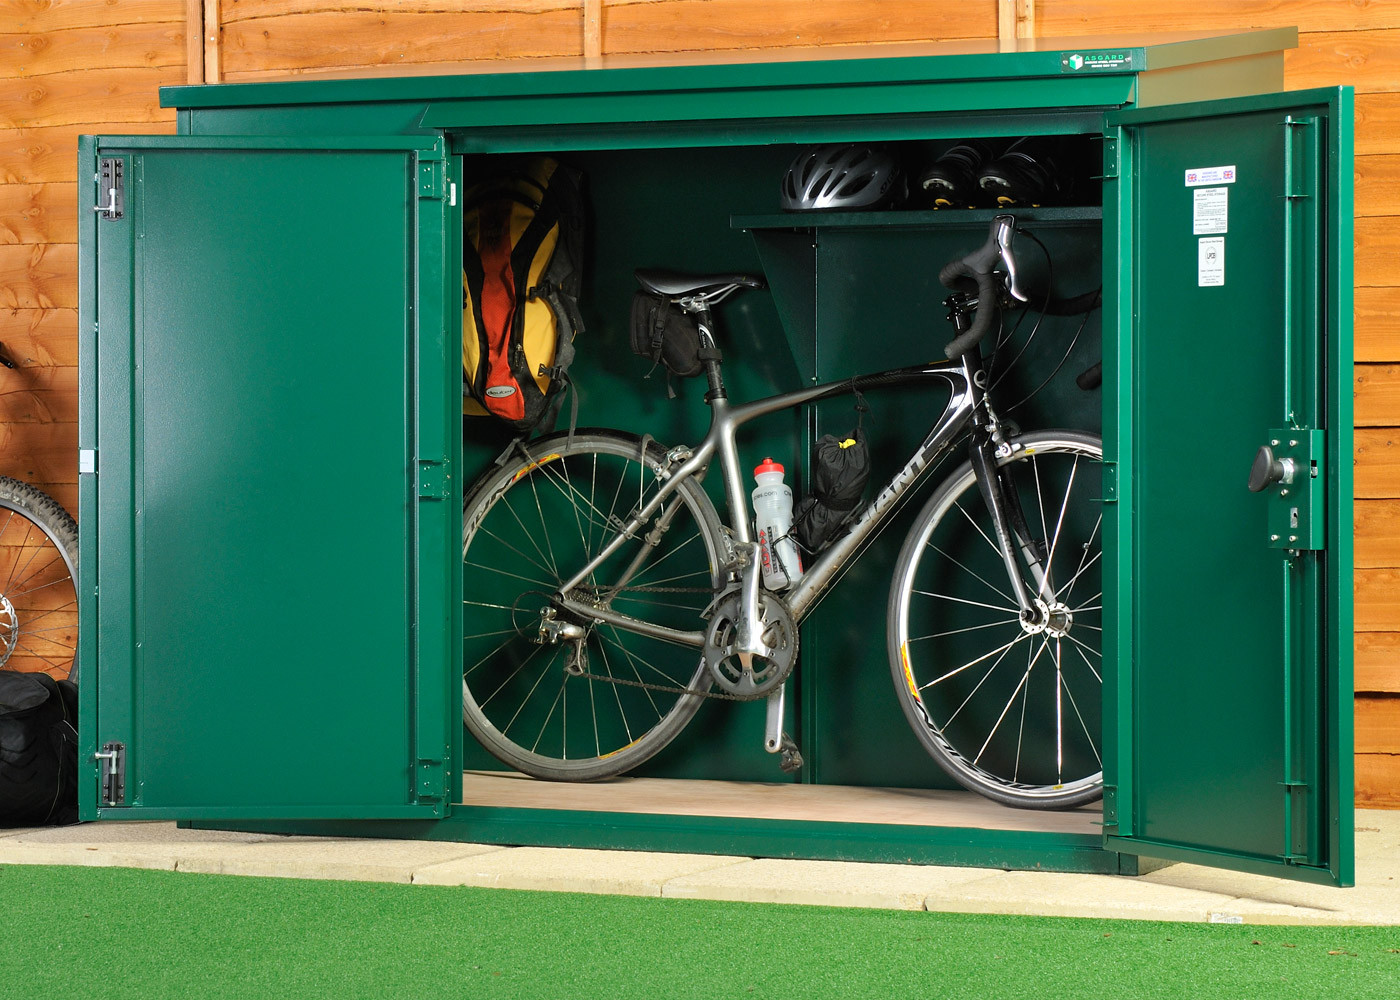 Amazing bike shed police approved - high security metal bike storage for up to 3 bikes cglonob